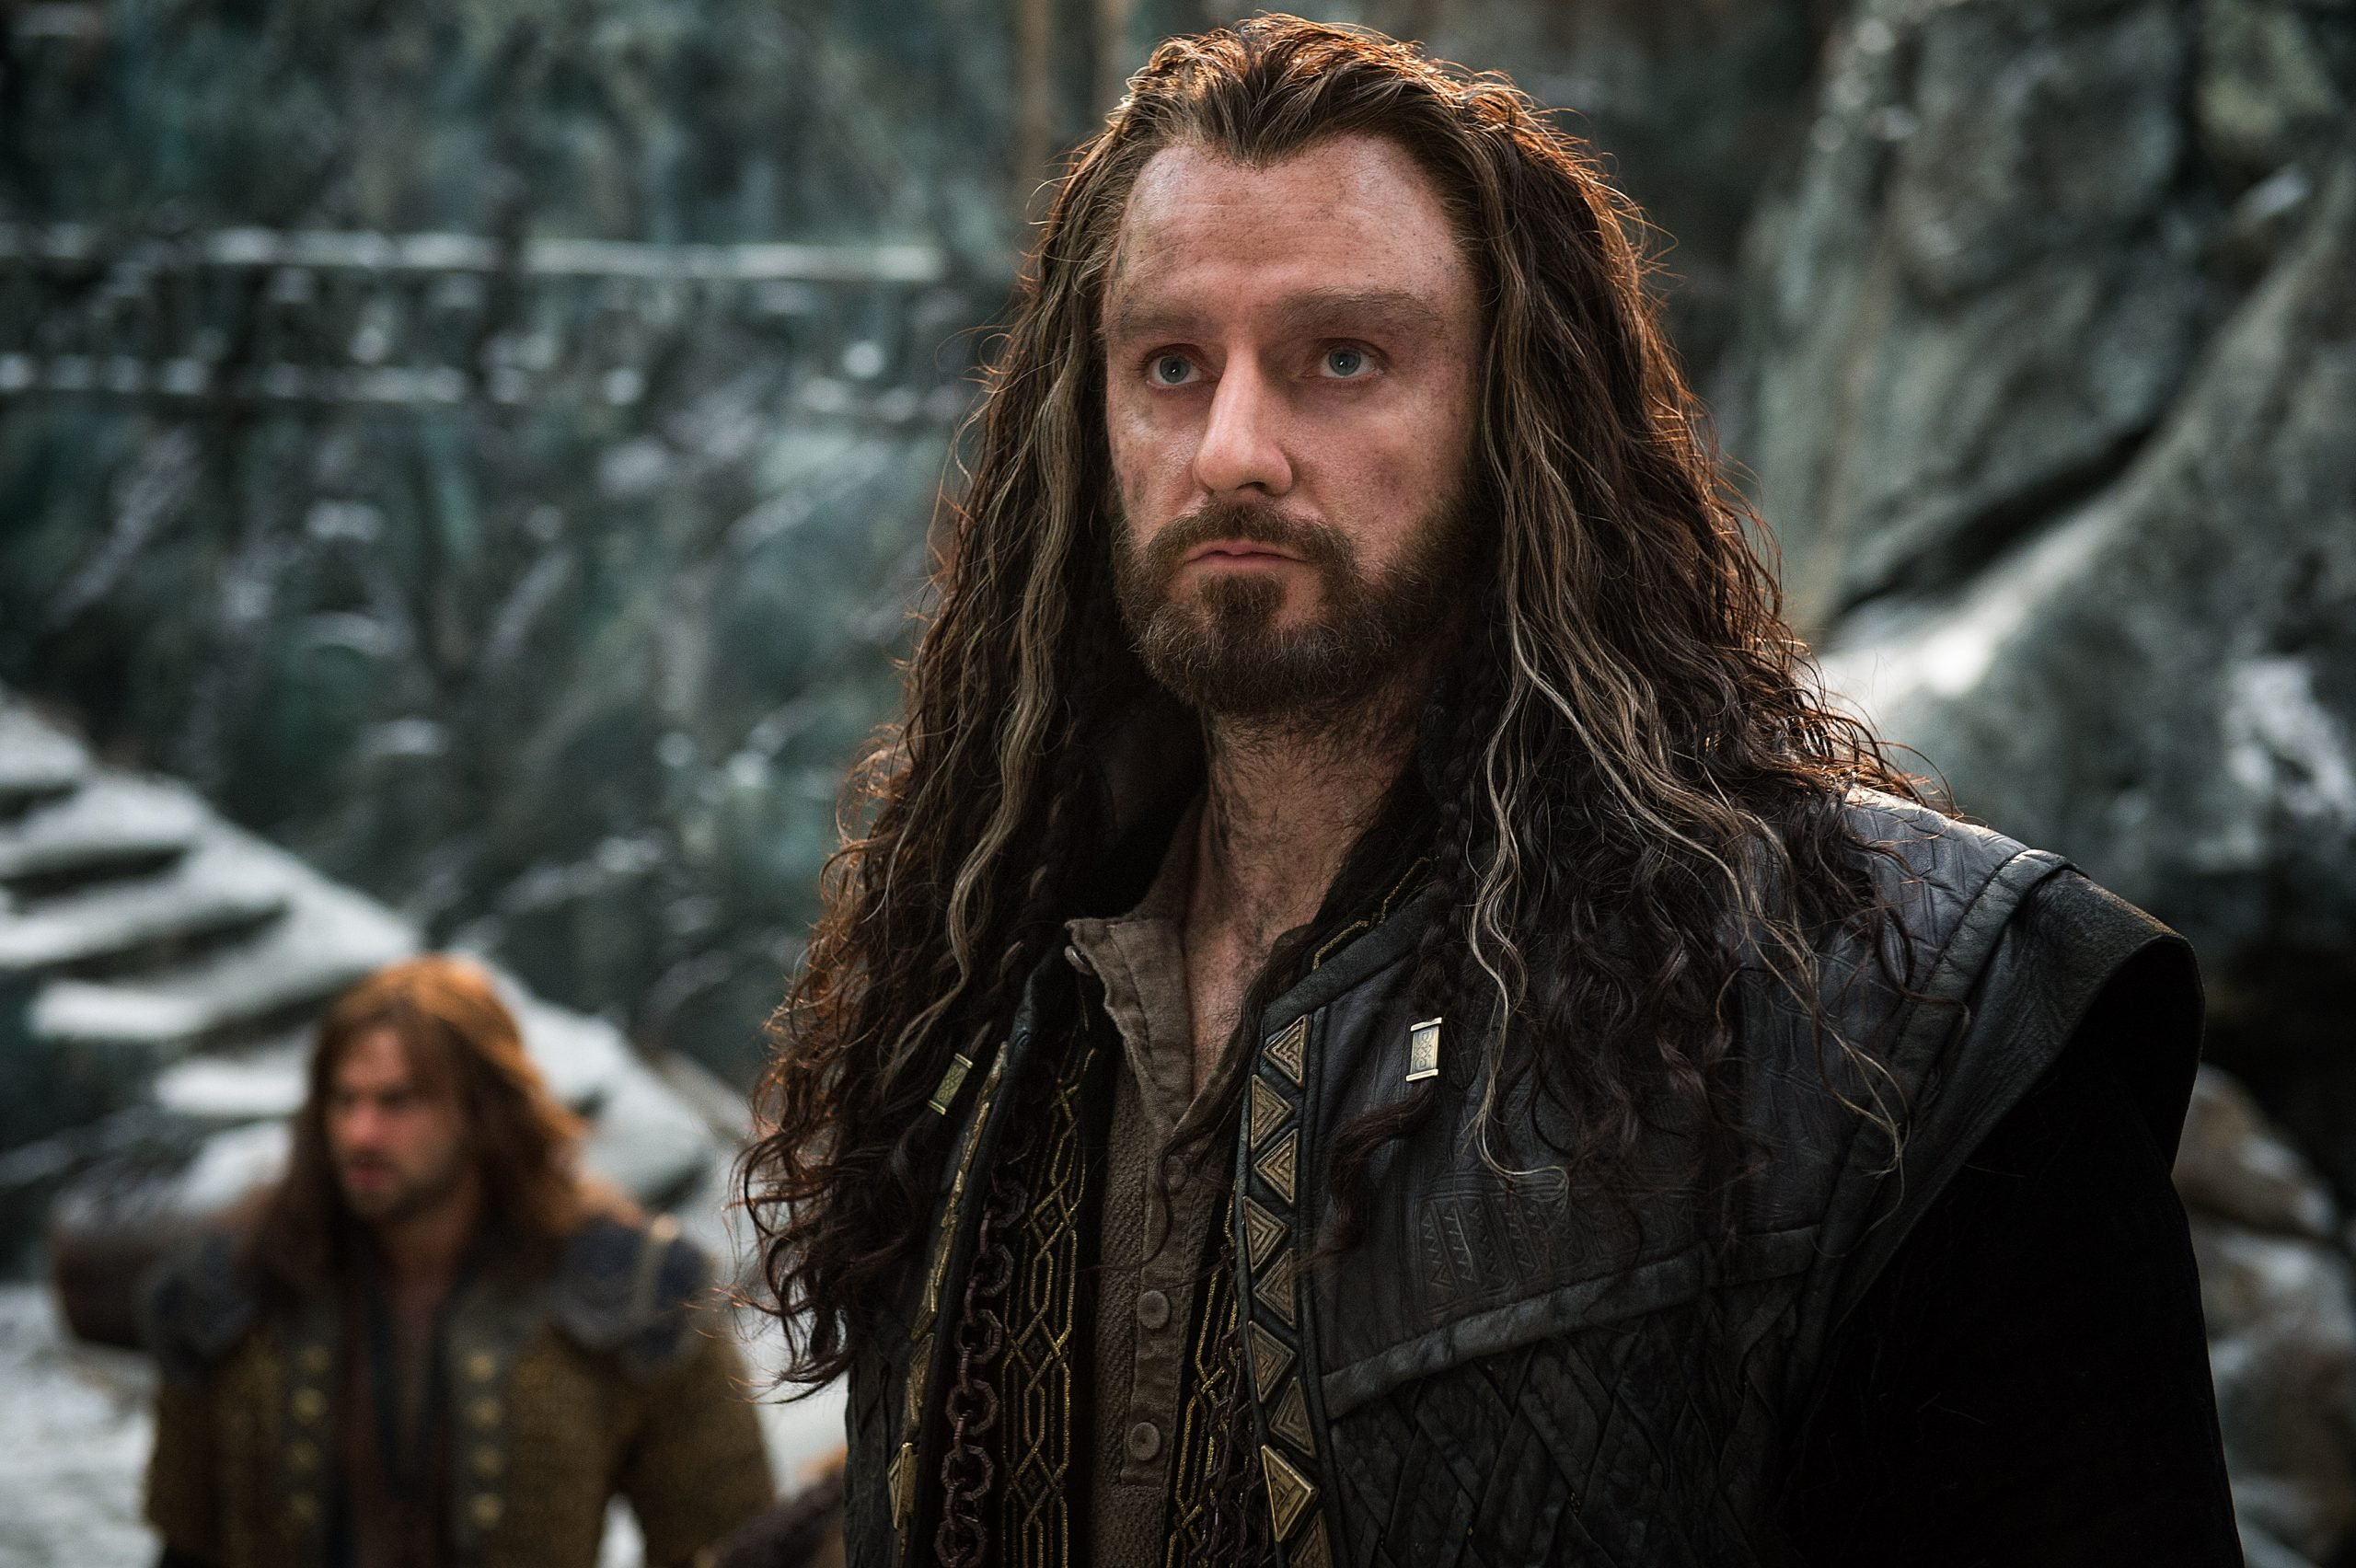 What Did Elrond Say to Thorin in Elvish?